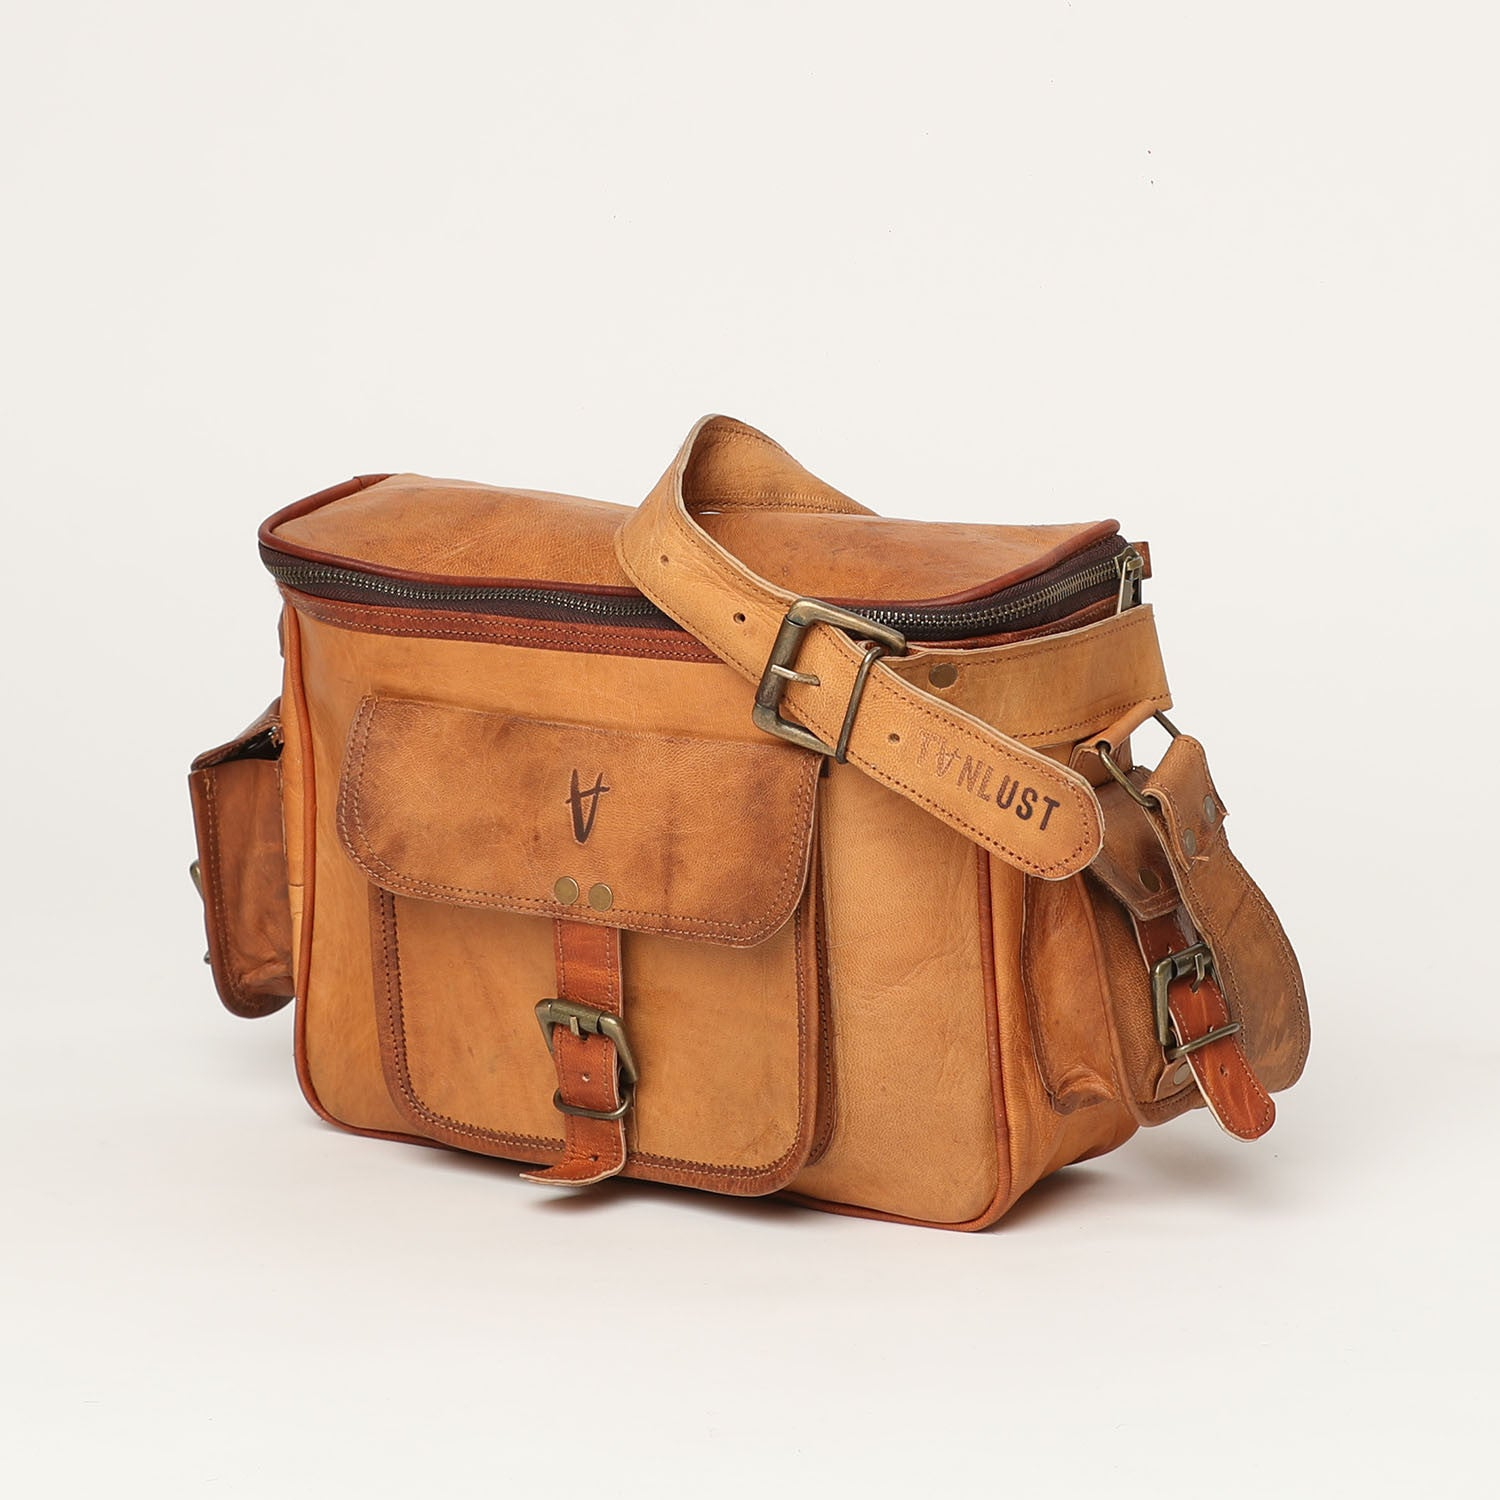 Best leather bags in india